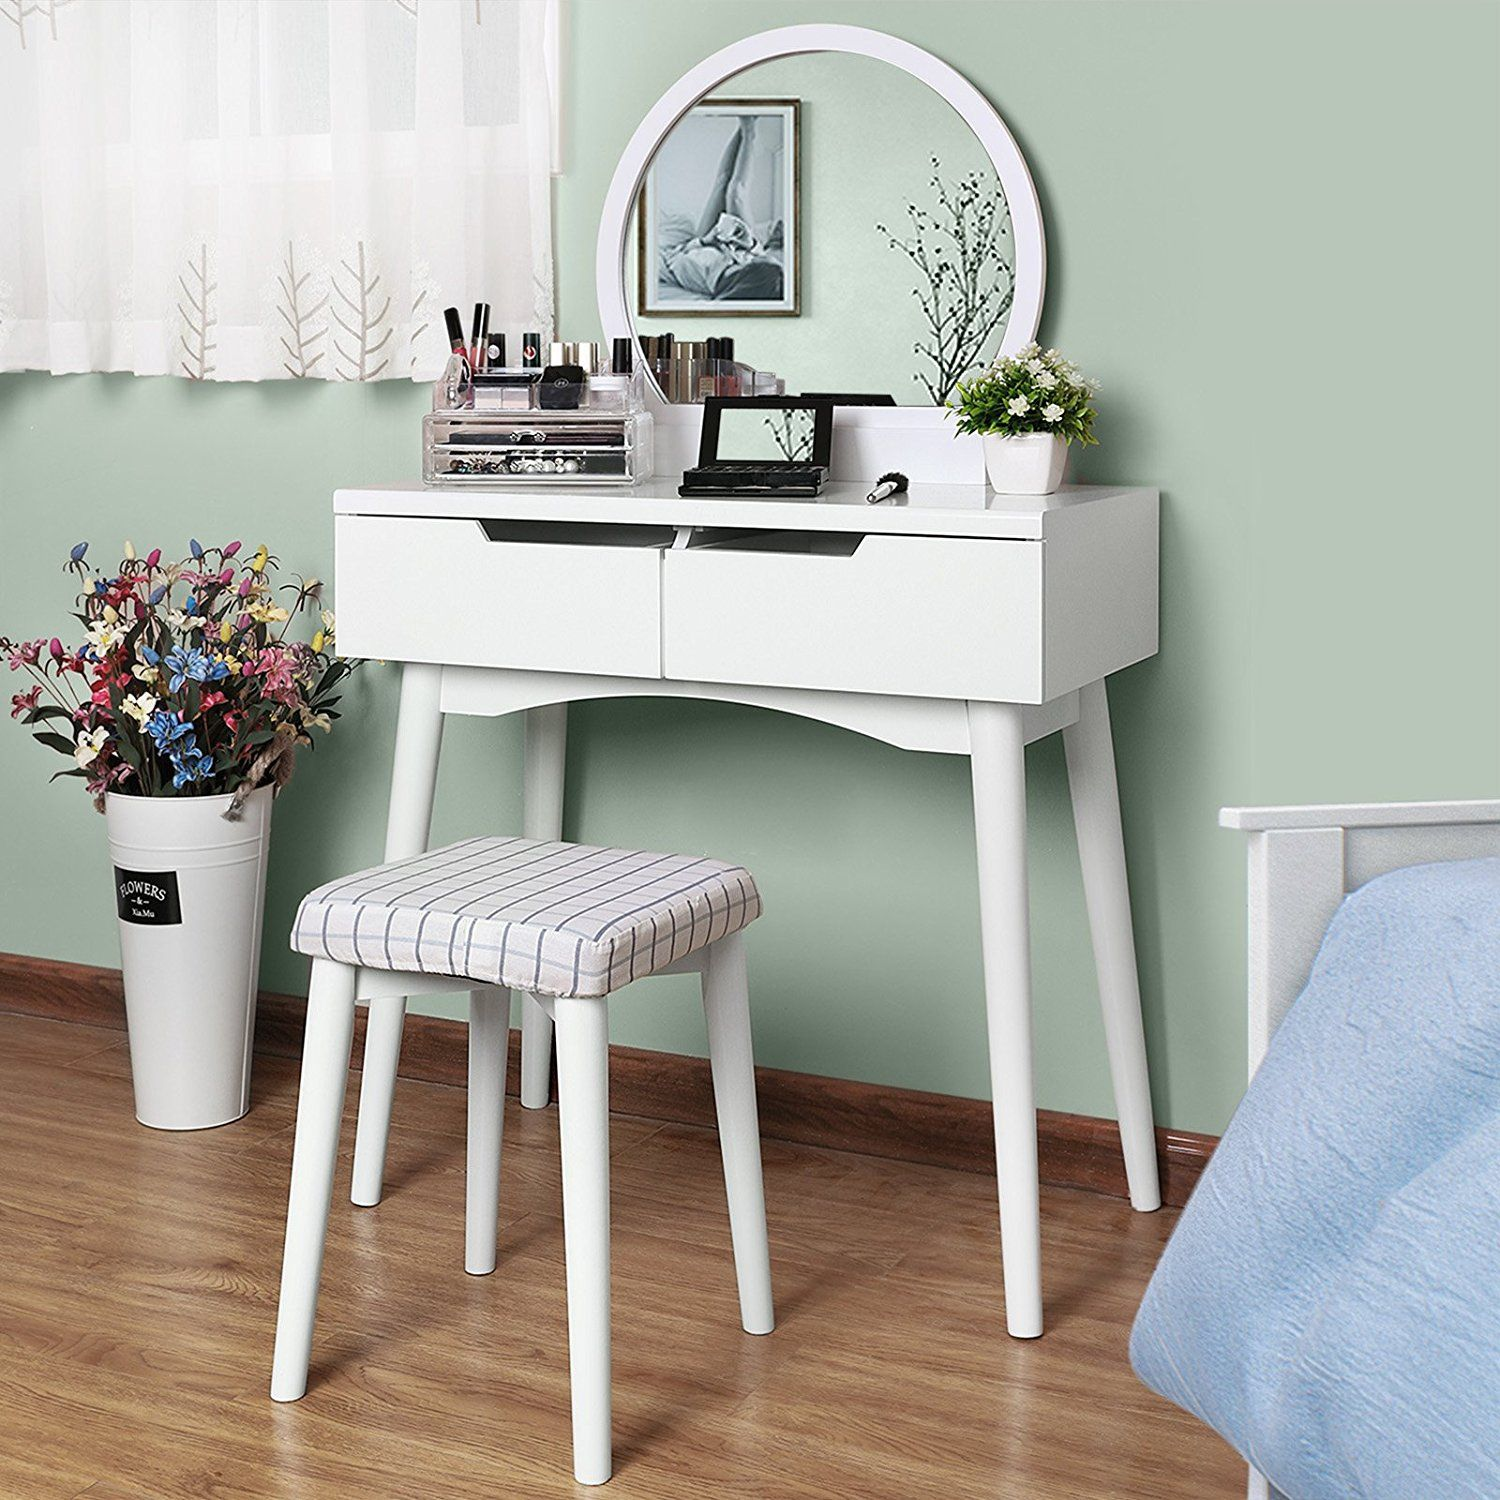 Songmics vanity makeup table set with mirror and stool sliding